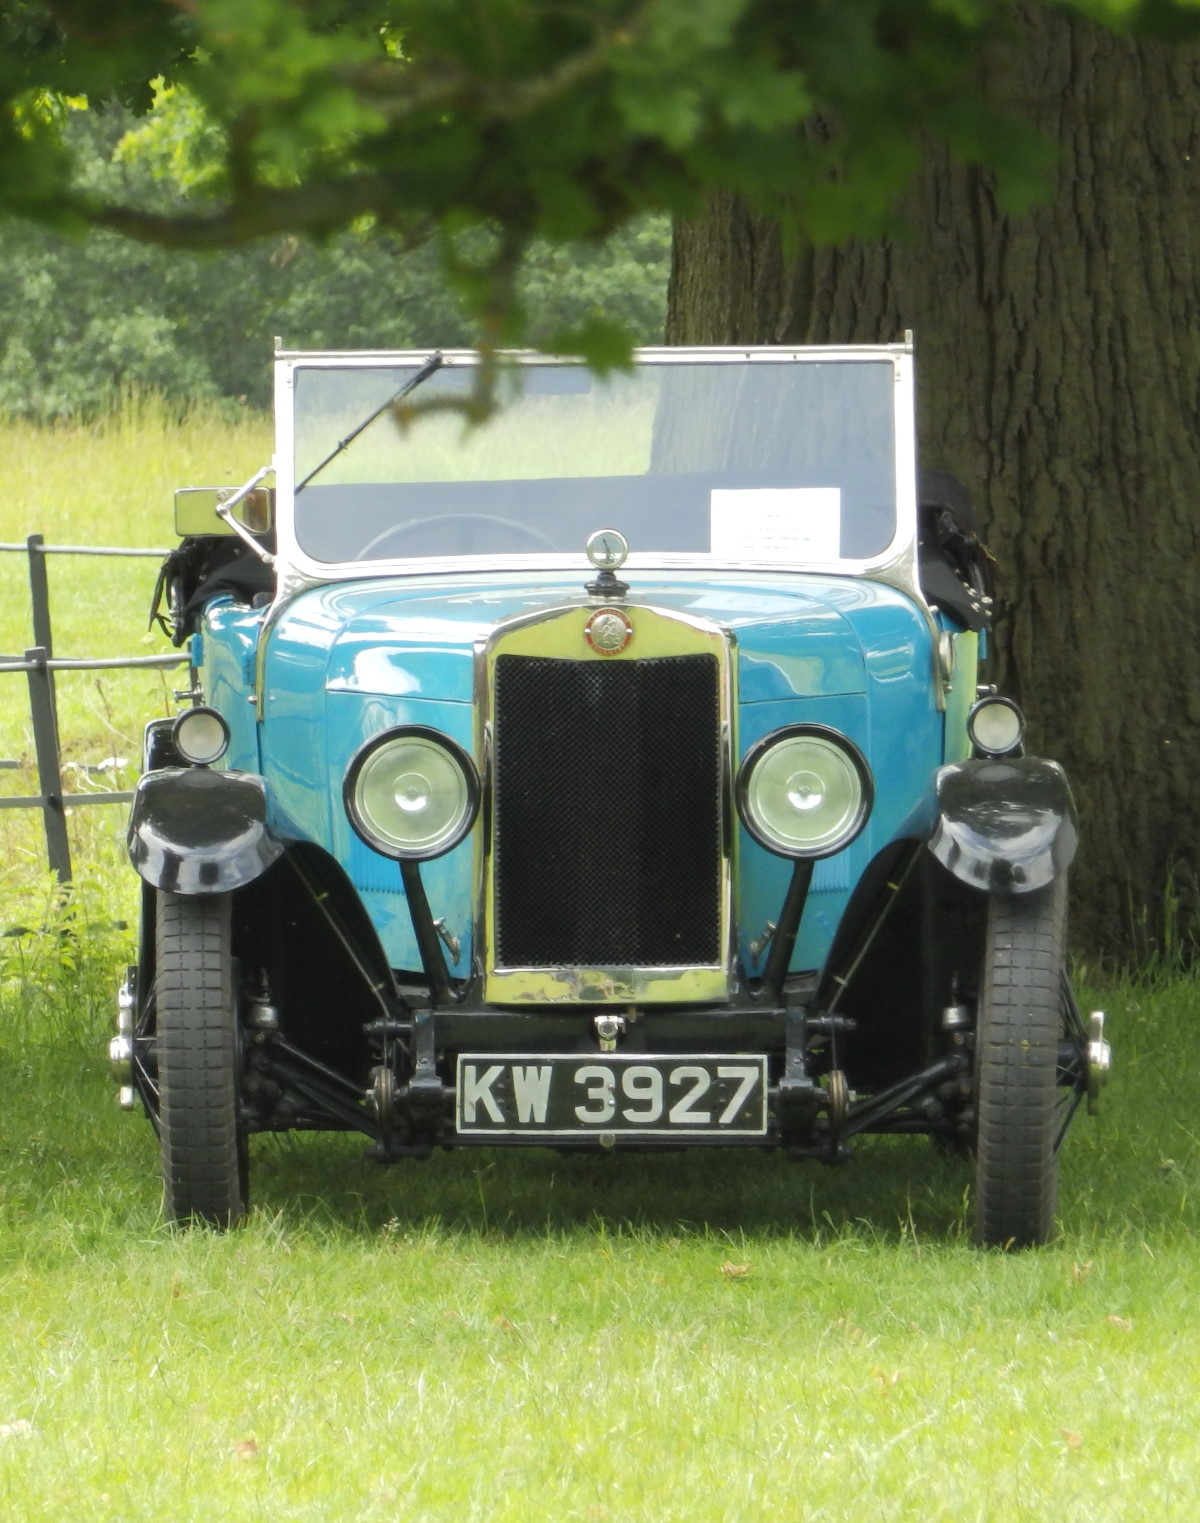 1928 P-Type, Avon bodied four-seat tourer at Broughton Castle in June 2019.